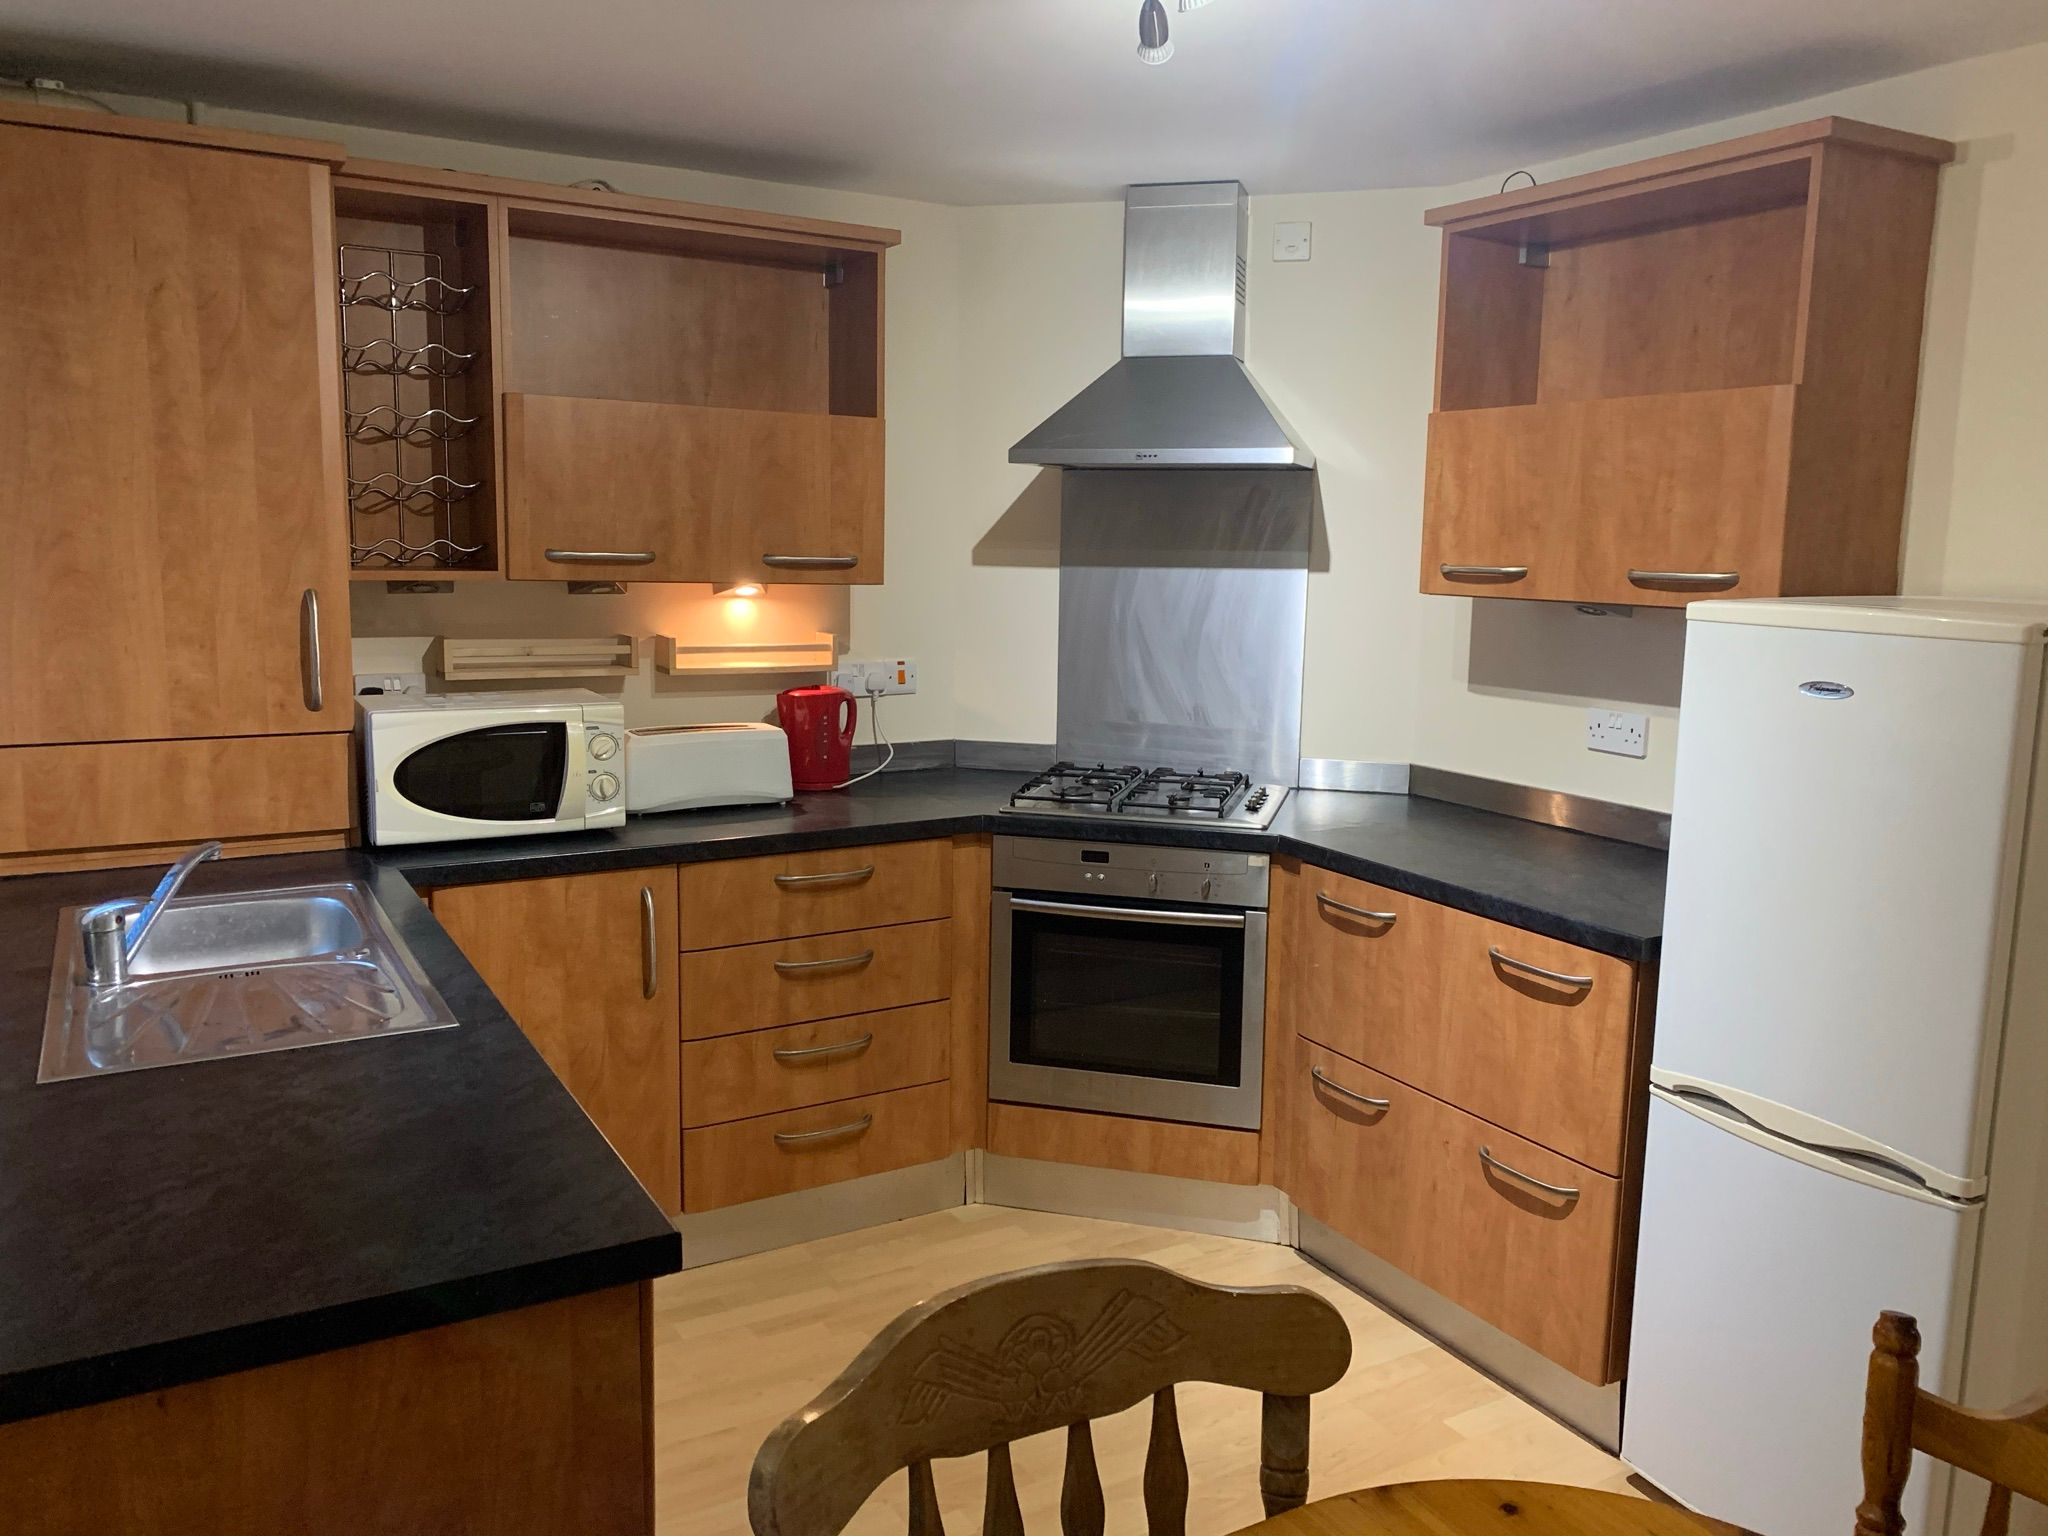 2 bedroom ground floor flat/apartment To Let in Manchester - Photograph 1.